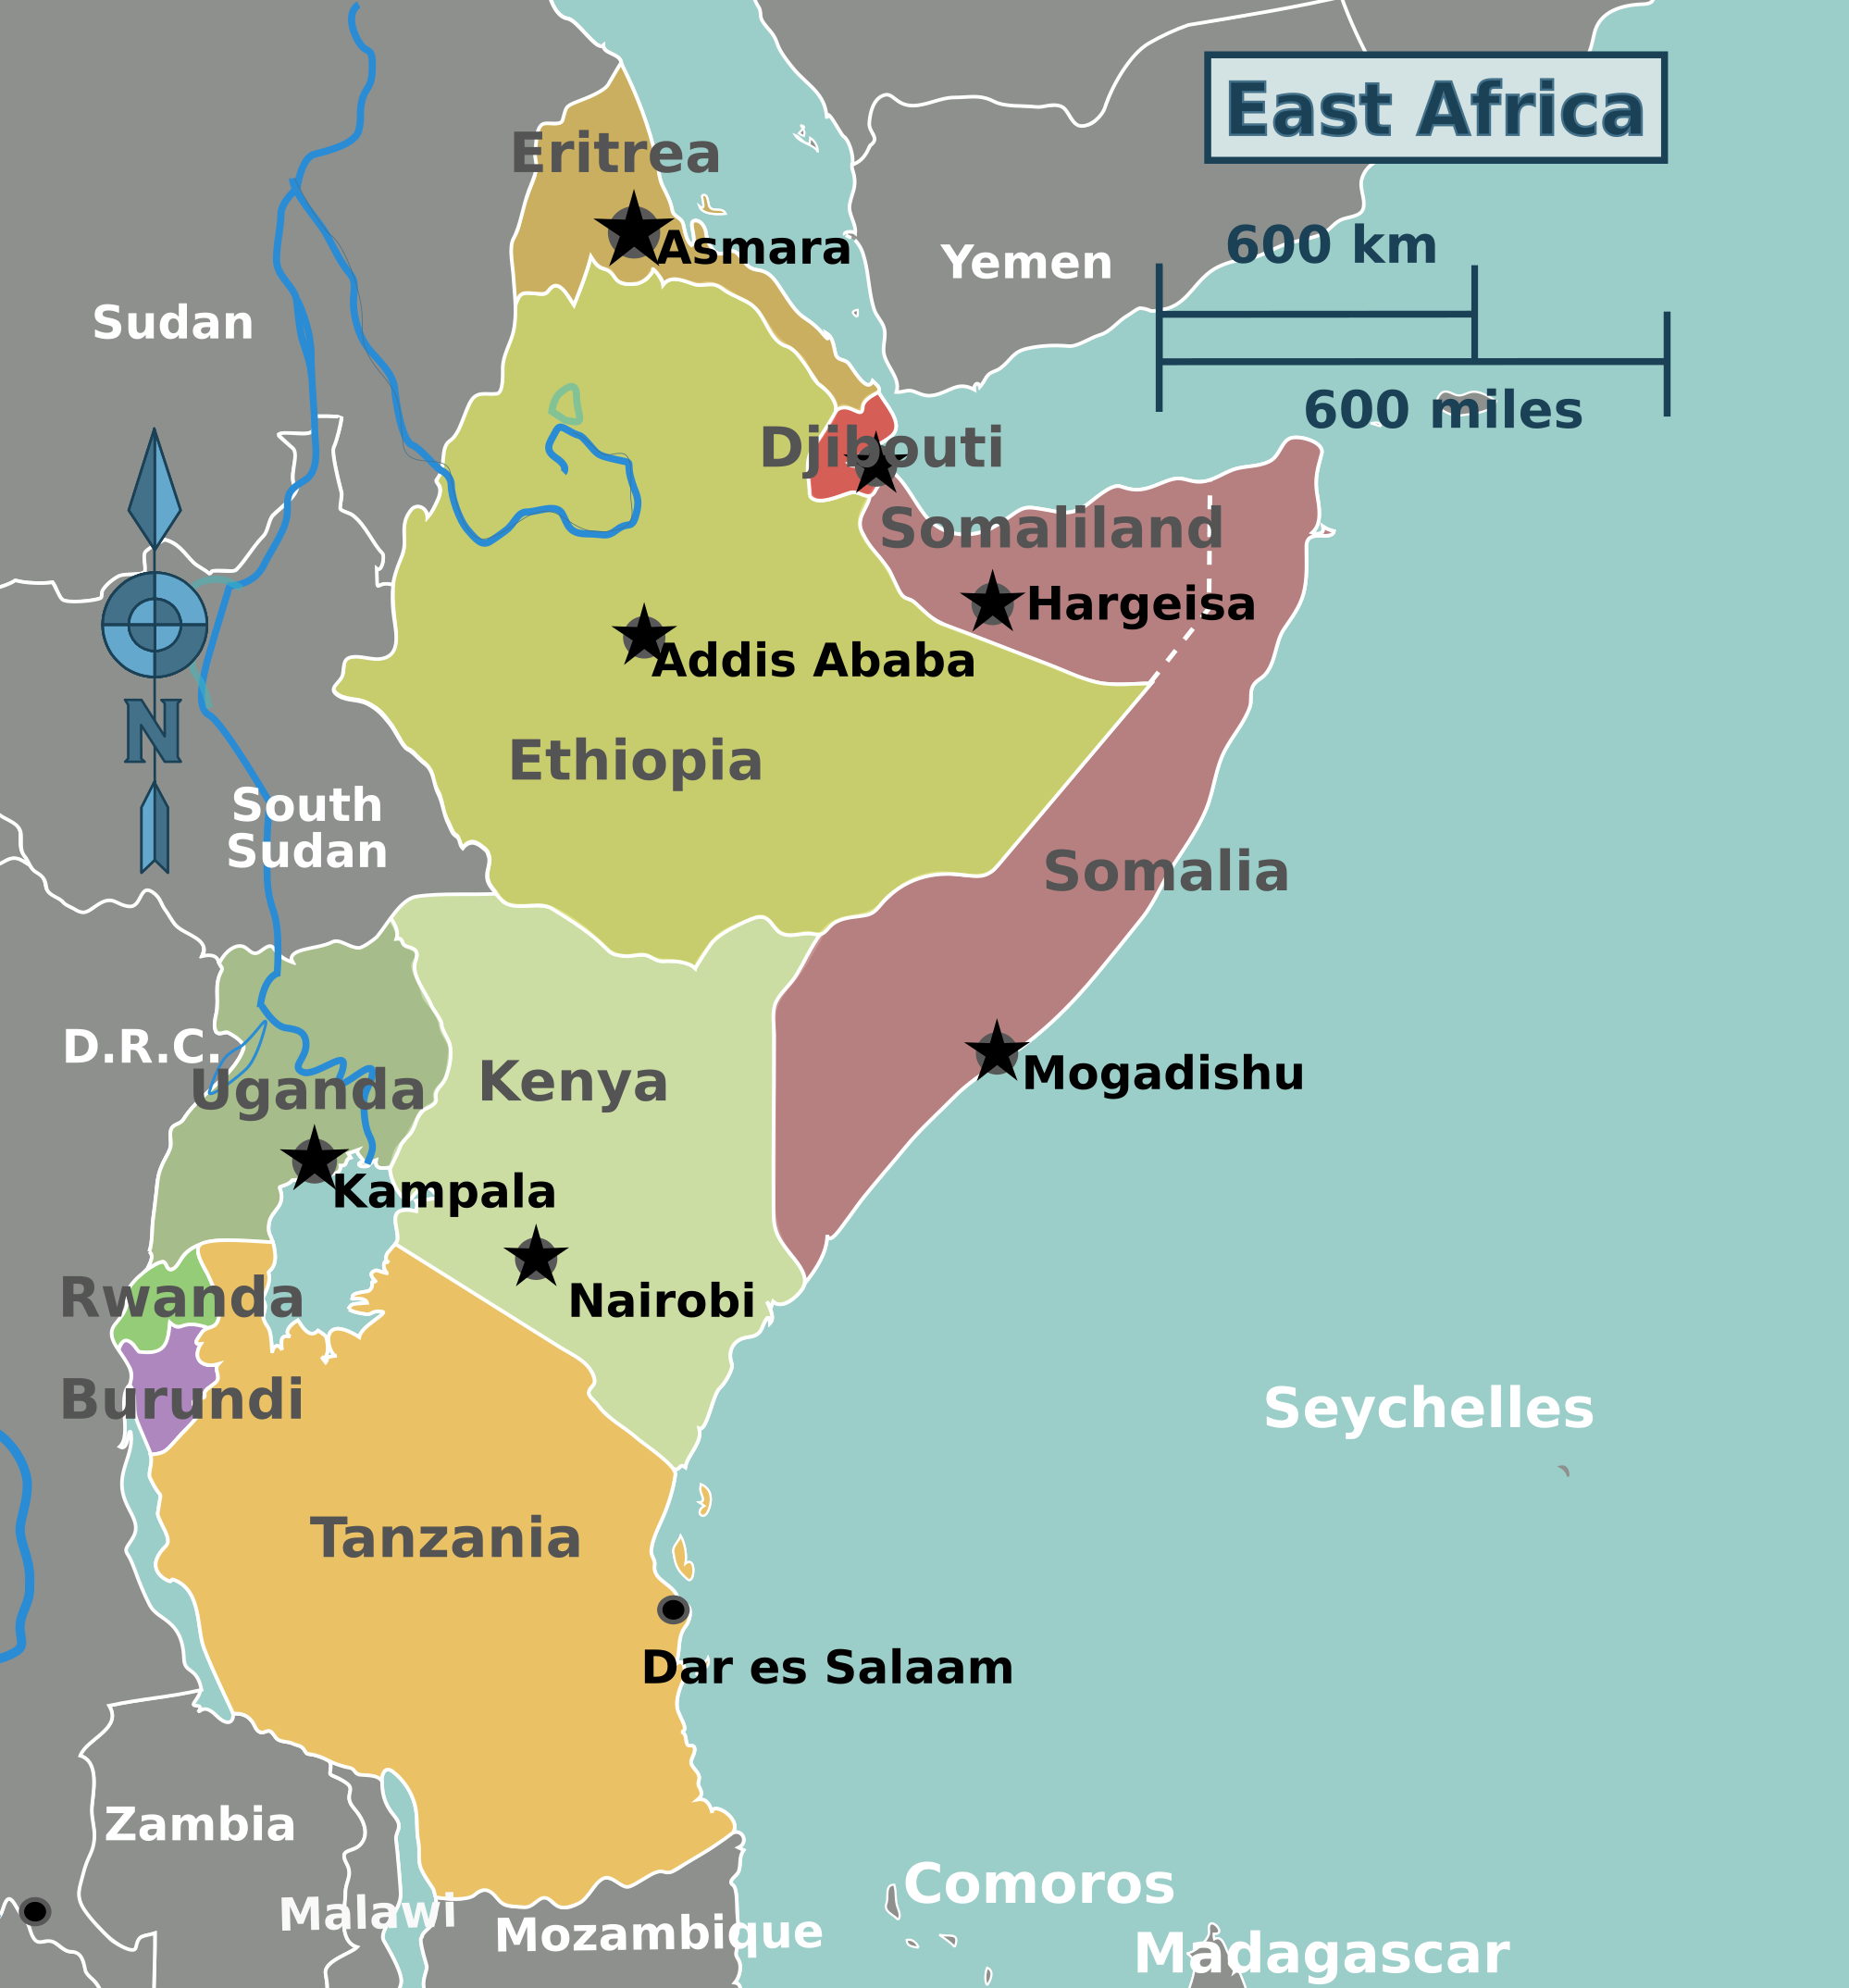 East_Africa_regions_map.png